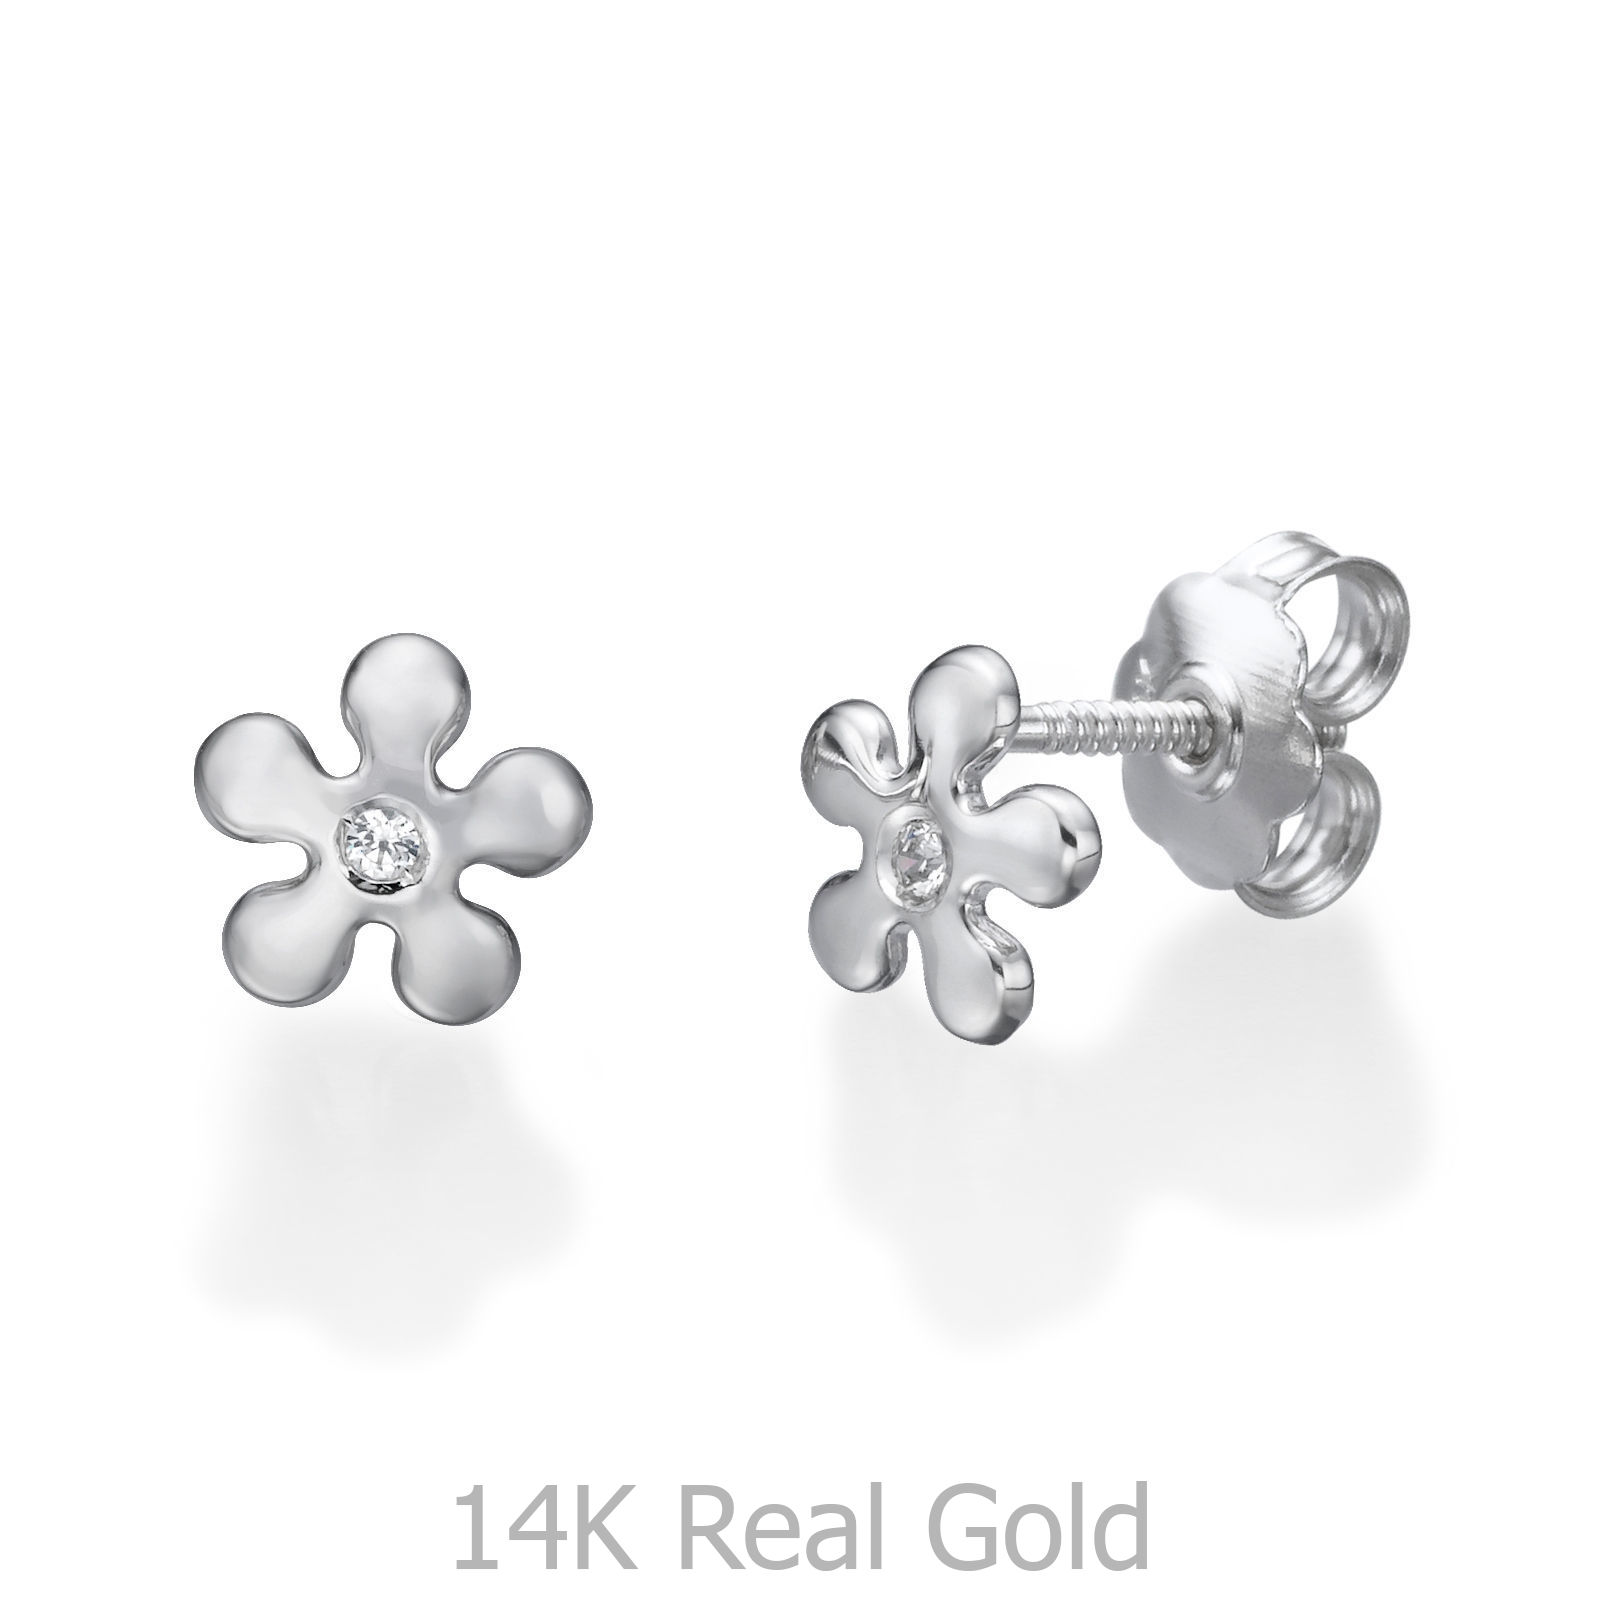 9440661a1 Details about Tiny White Gold Flower 14K Children Earrings Cubic Zirconia  Jewelry Gifts Girl